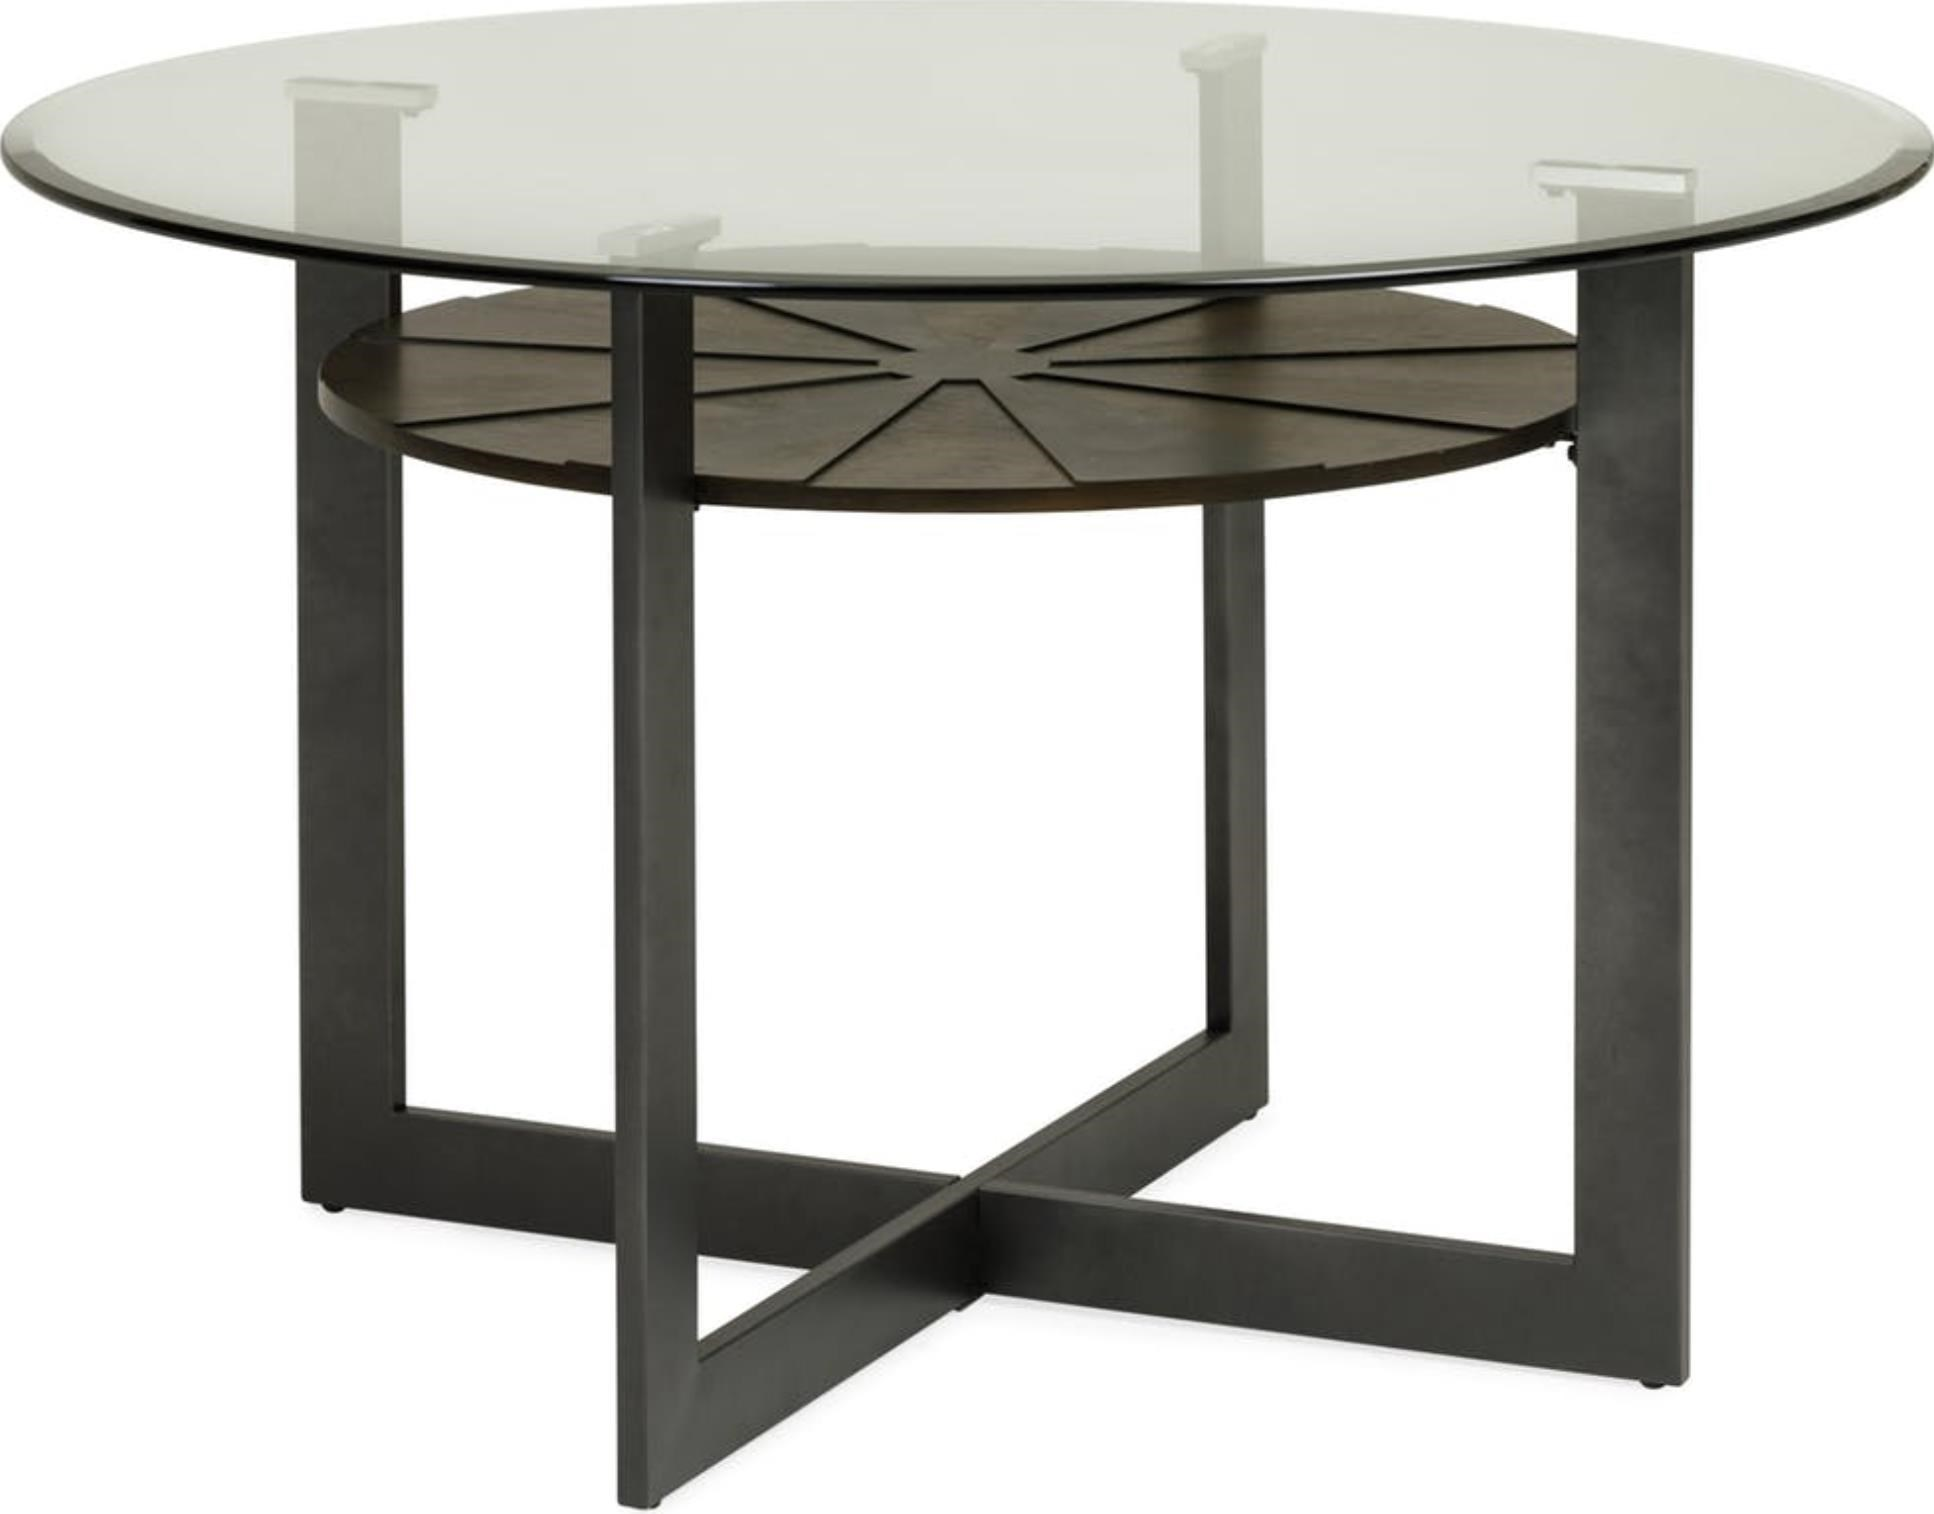 Olsen Glass Top Dining Table at Ruby Gordon Home